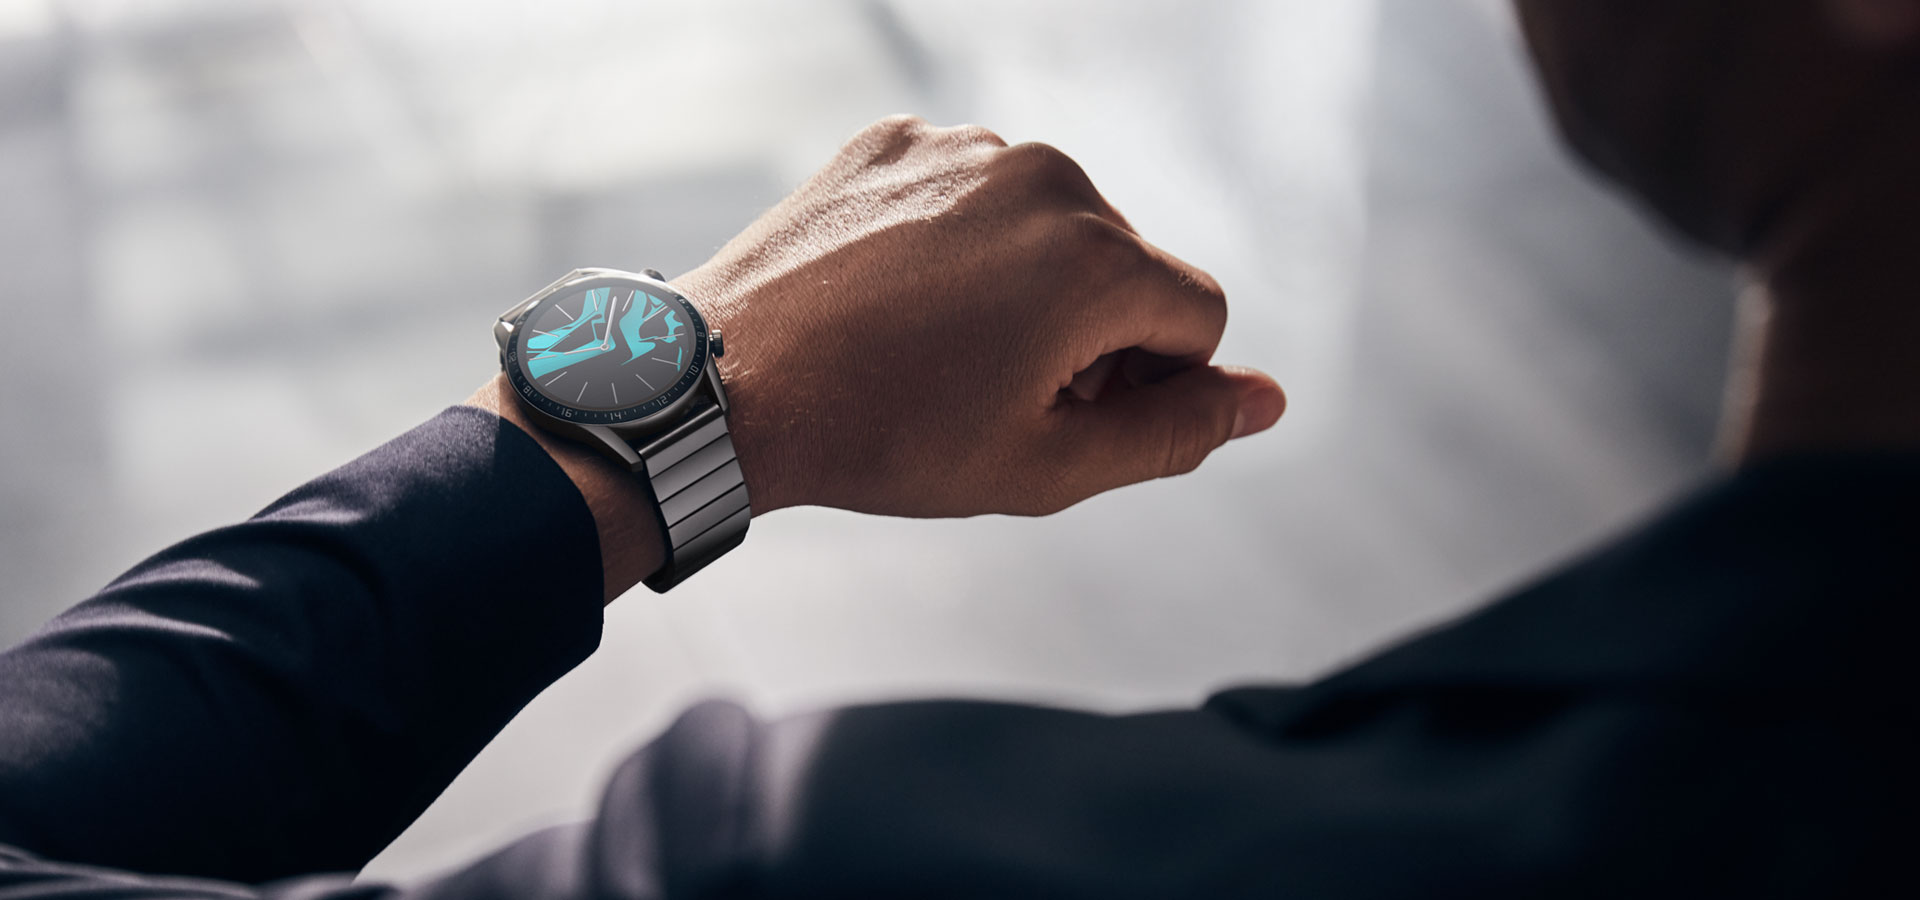 HUAWEI WATCH GT2 All-day Assistant